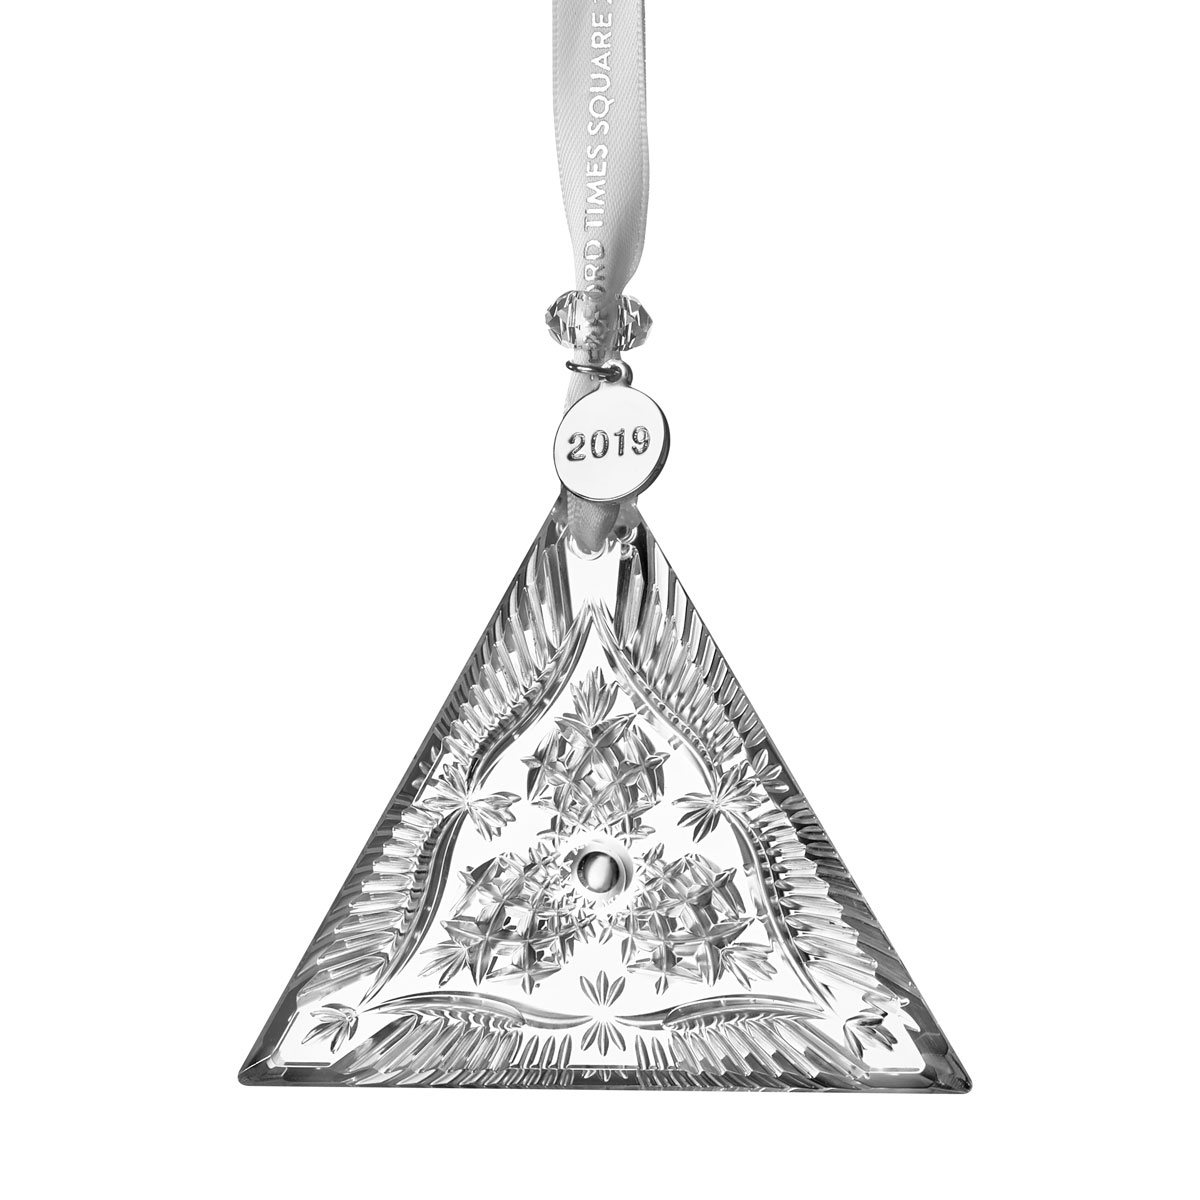 Waterford crystal 2019 times square triangle ornament - Waterford crystal swimming pool times ...